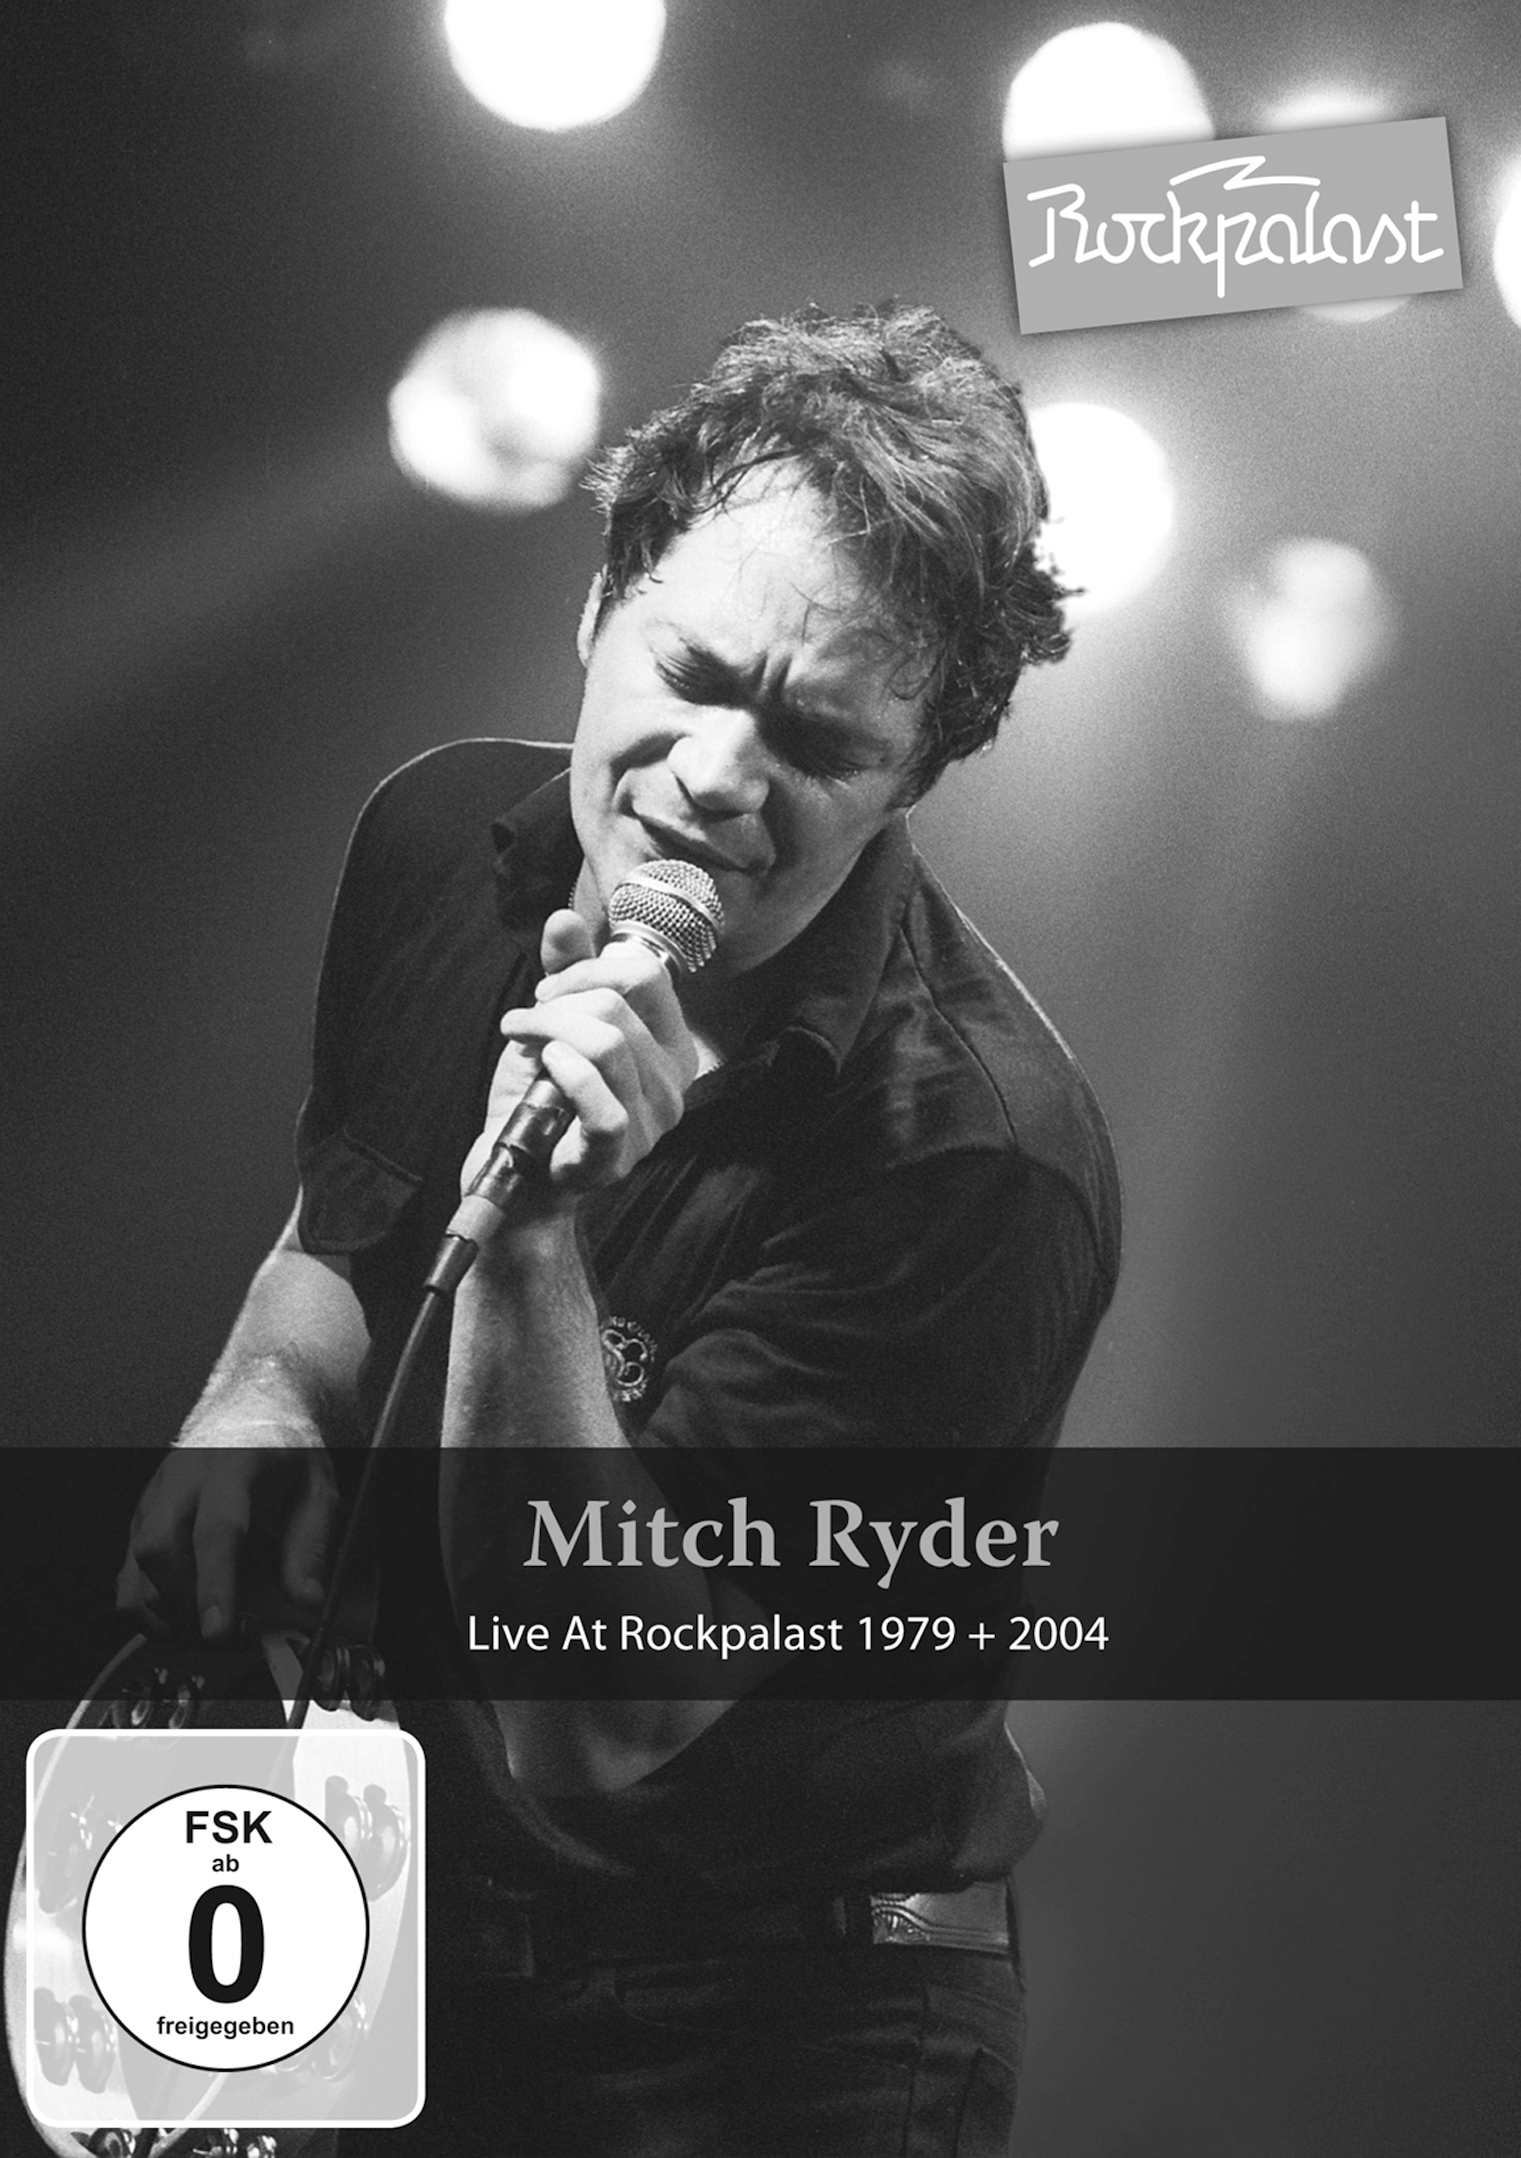 Mitch Ryder: Live at Rockpalast 1979 + 2004